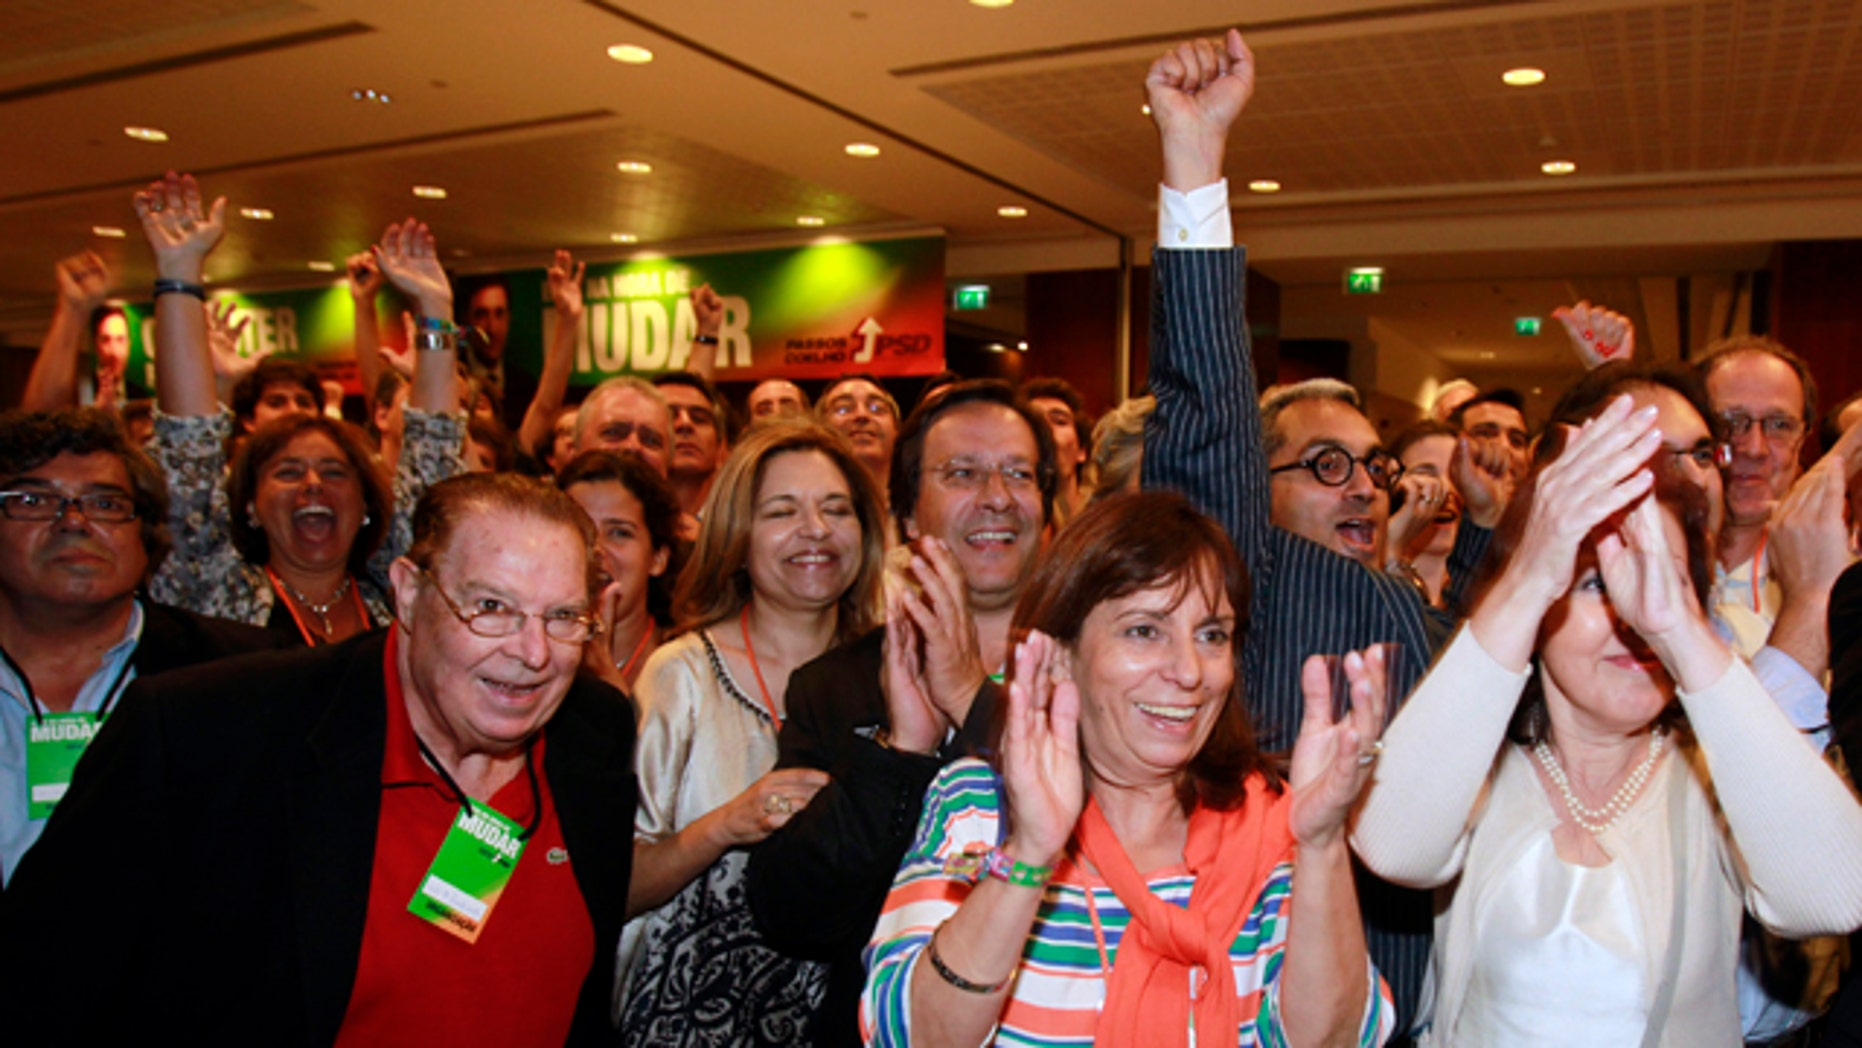 June 5: Supporters of the center-right Social Democratic Party, PSD, react to the exit polls results shown on TV screens seconds after voting closed in Portugal at a hotel in Lisbon. Exit polls showed the PSD unseating the ruling Socialist Party.